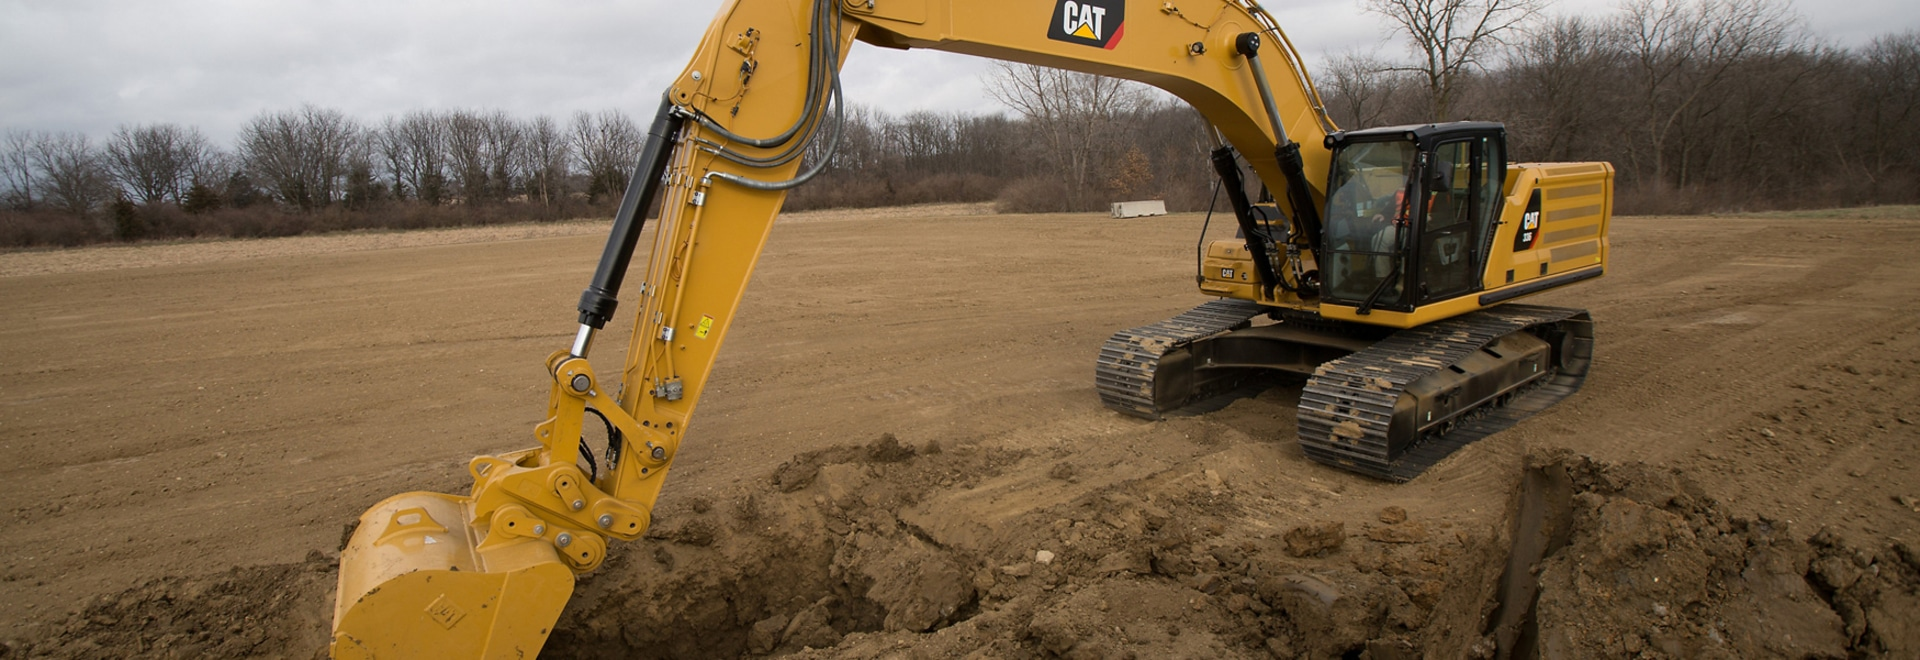 The excavators are said to have next generation technology